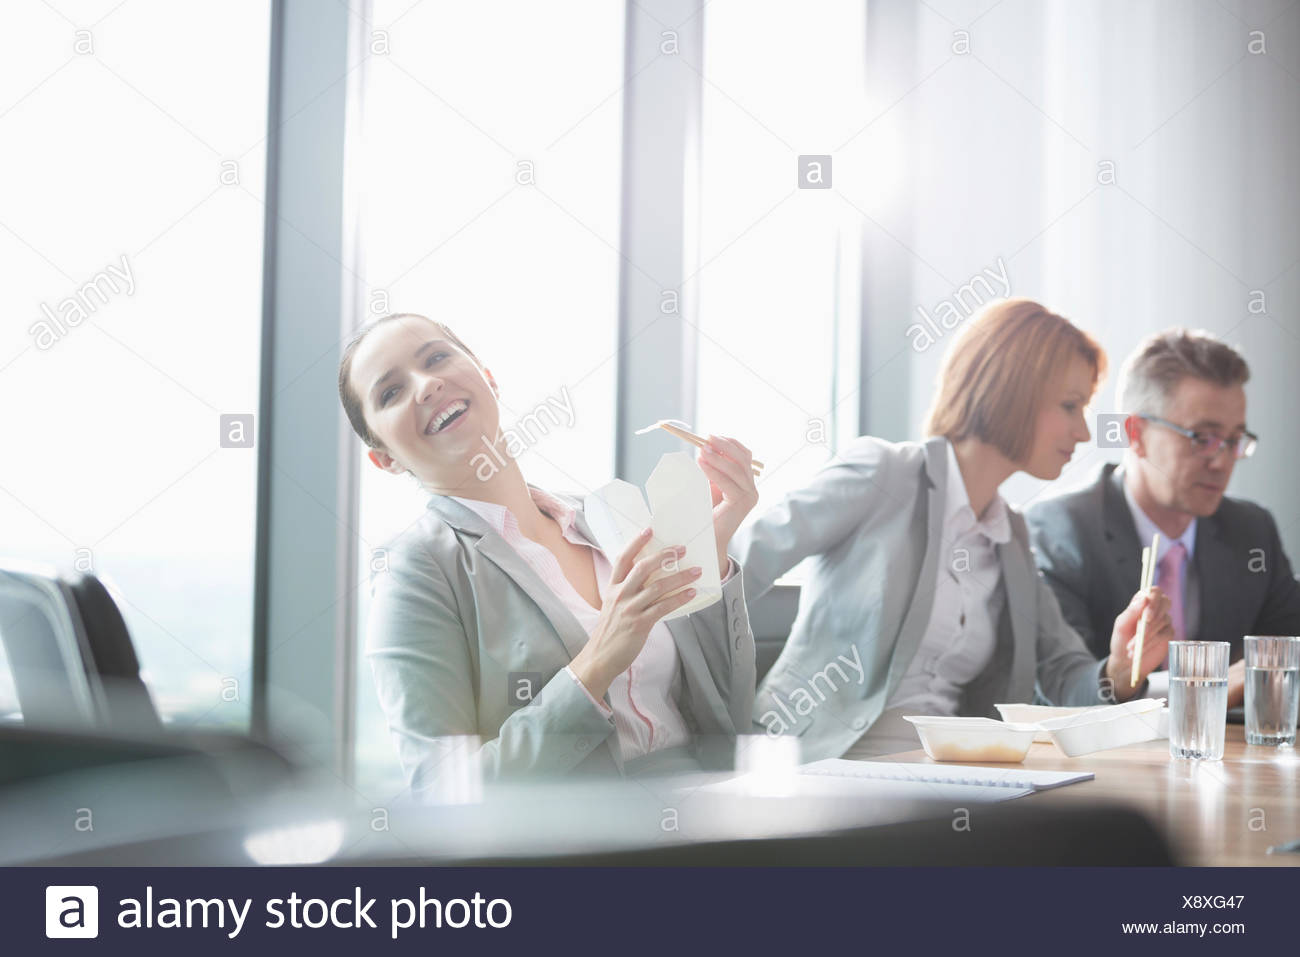 Business people on lunch break - Stock Image